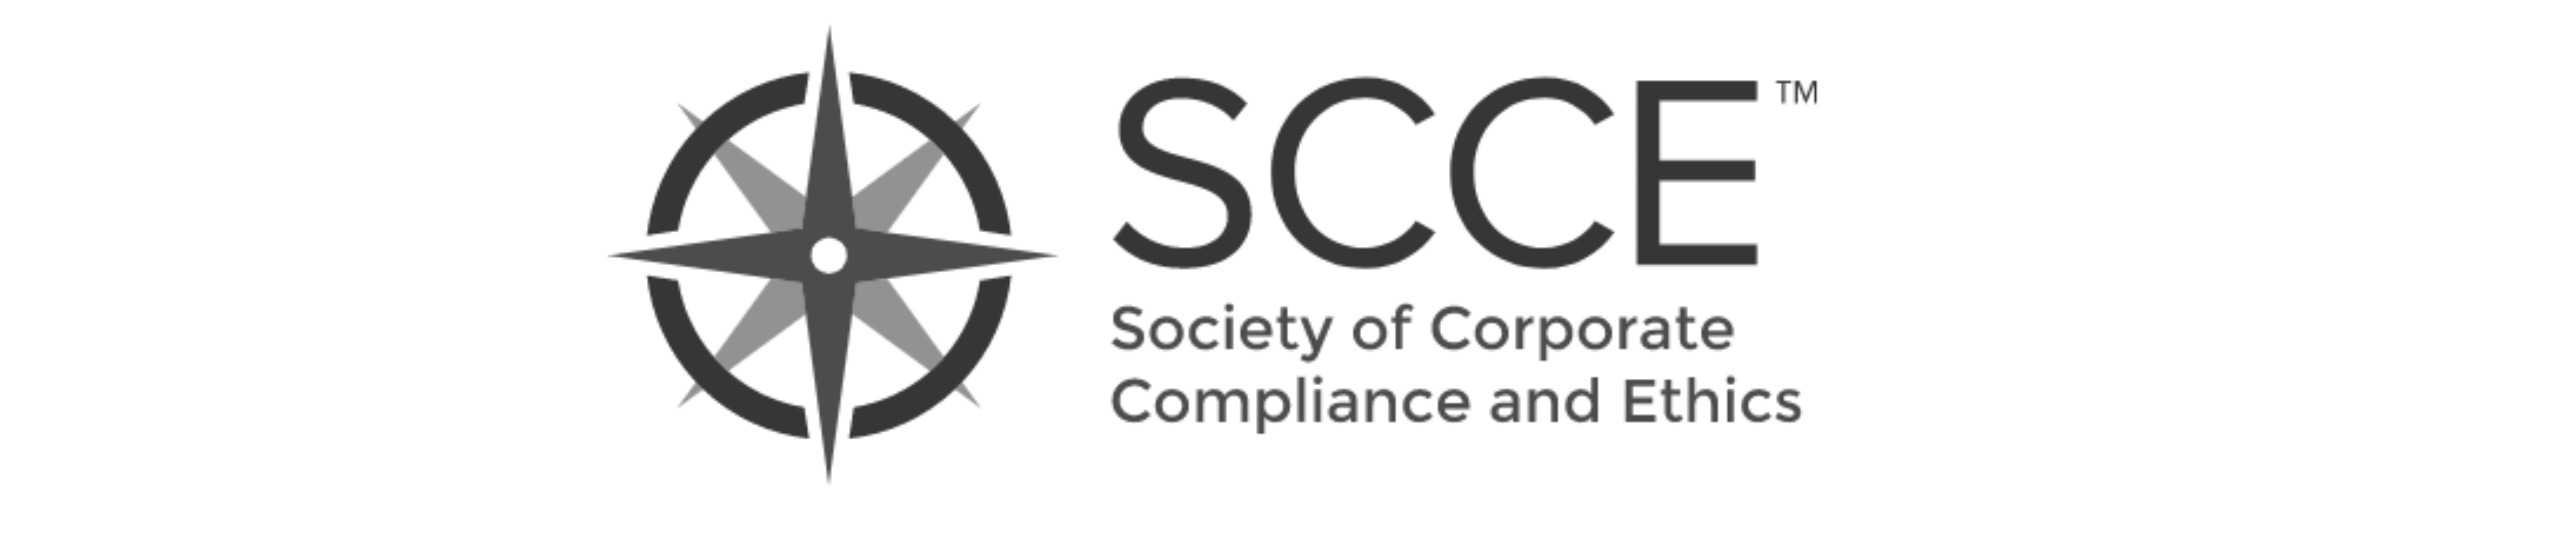 September 15-18: 18th Annual Compliance & Ethics Institute